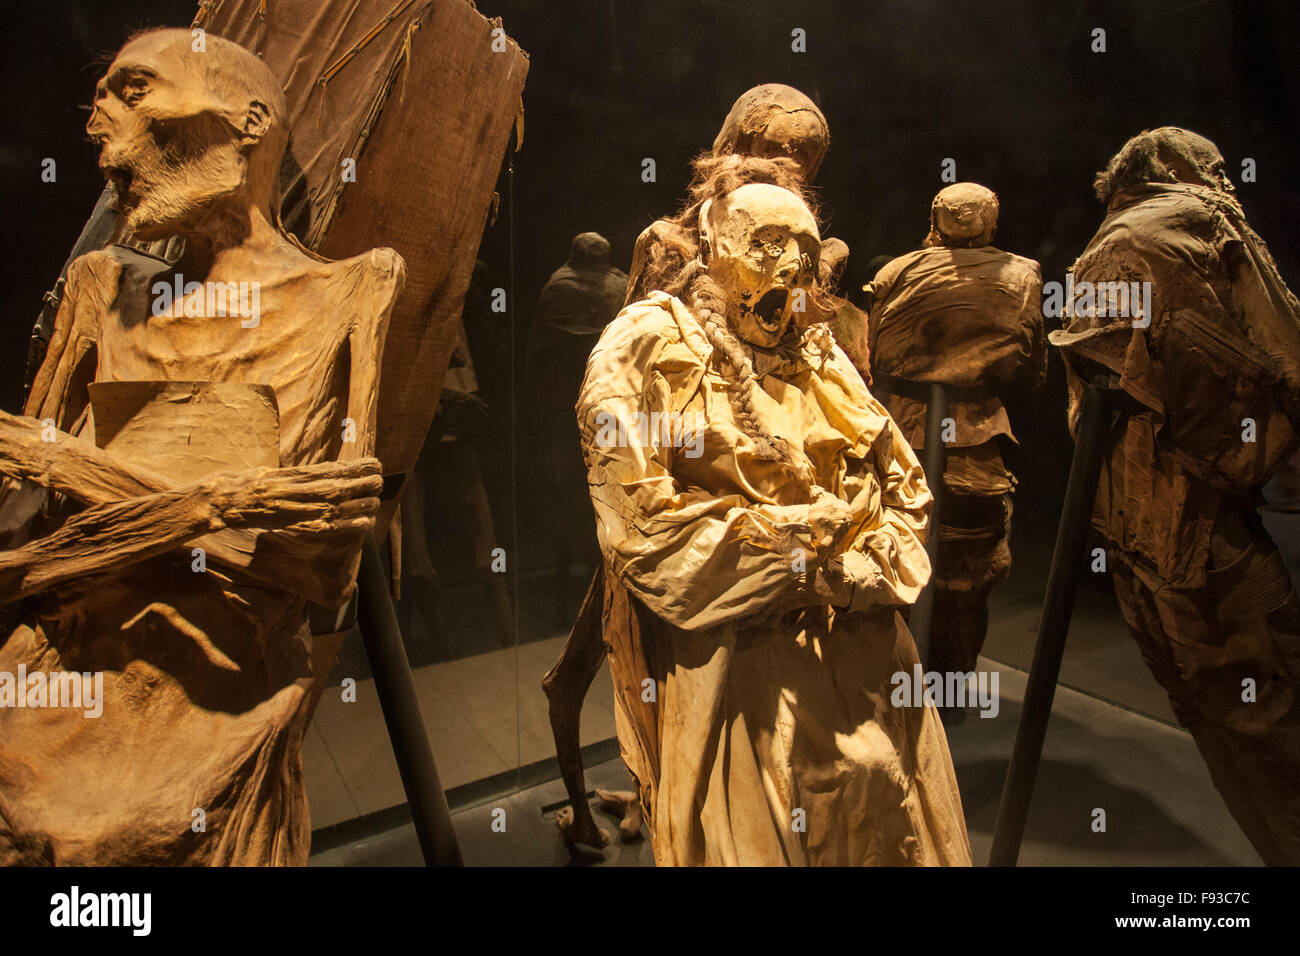 Macabre mummies in Guanajuato, Mexico's famous Mummy Museum. - Stock Image